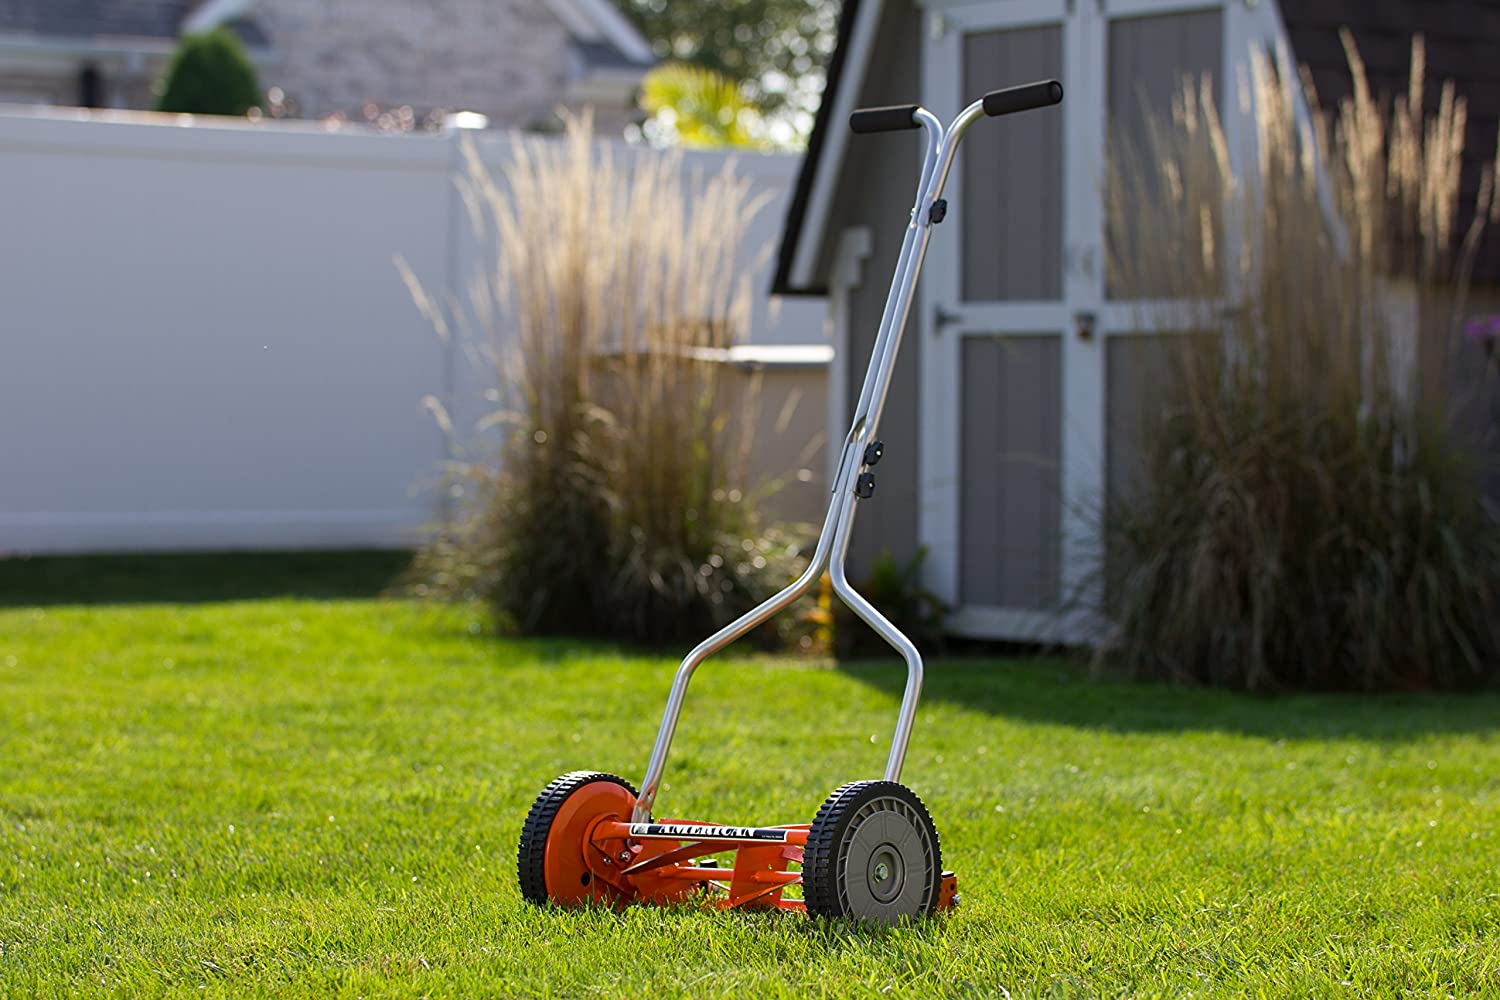 American Lawn Mower Best Lawn Mowers For Small Yard